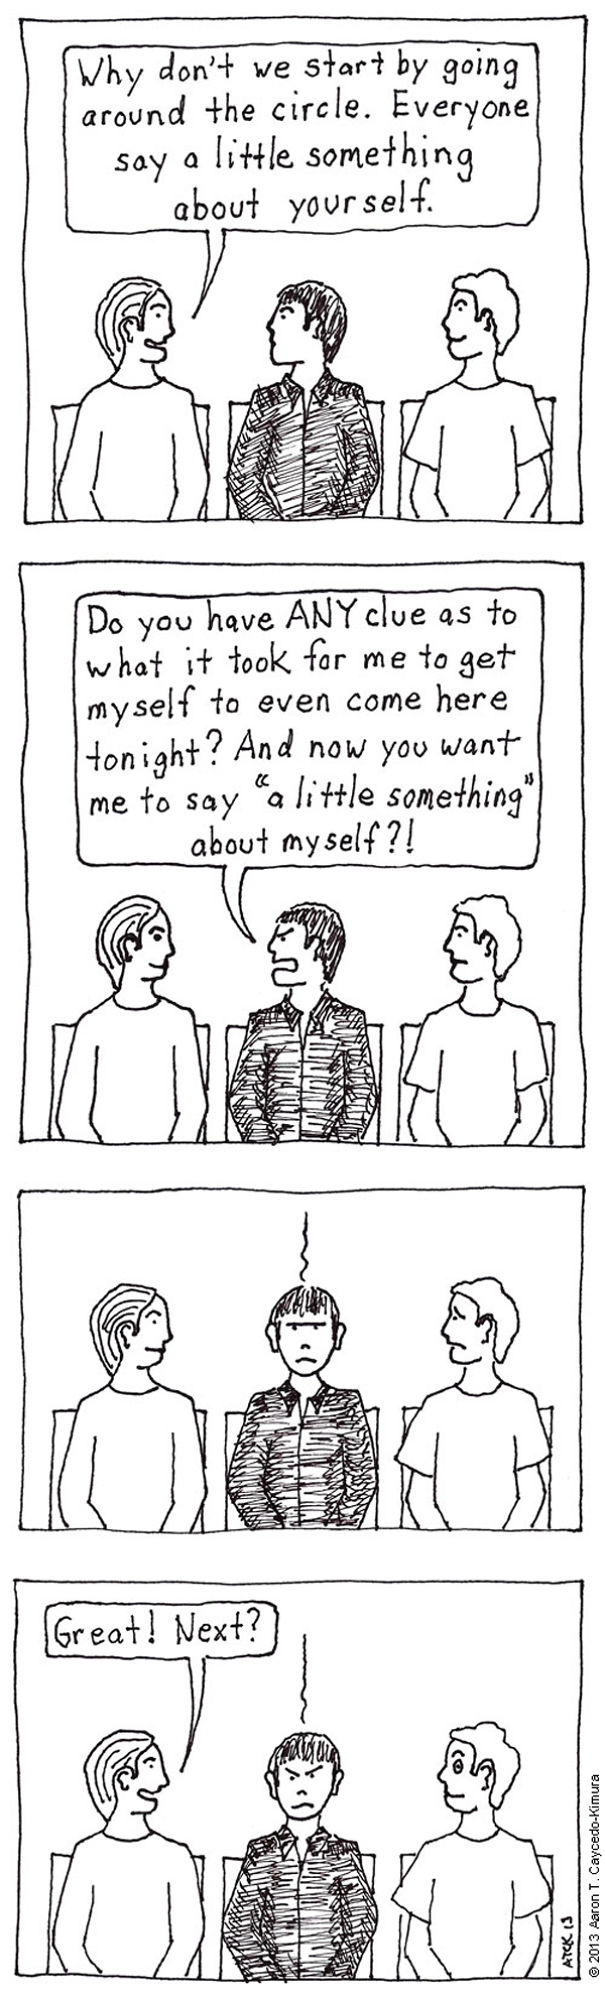 I Illustrate The Difficulties I Face As An Introvert